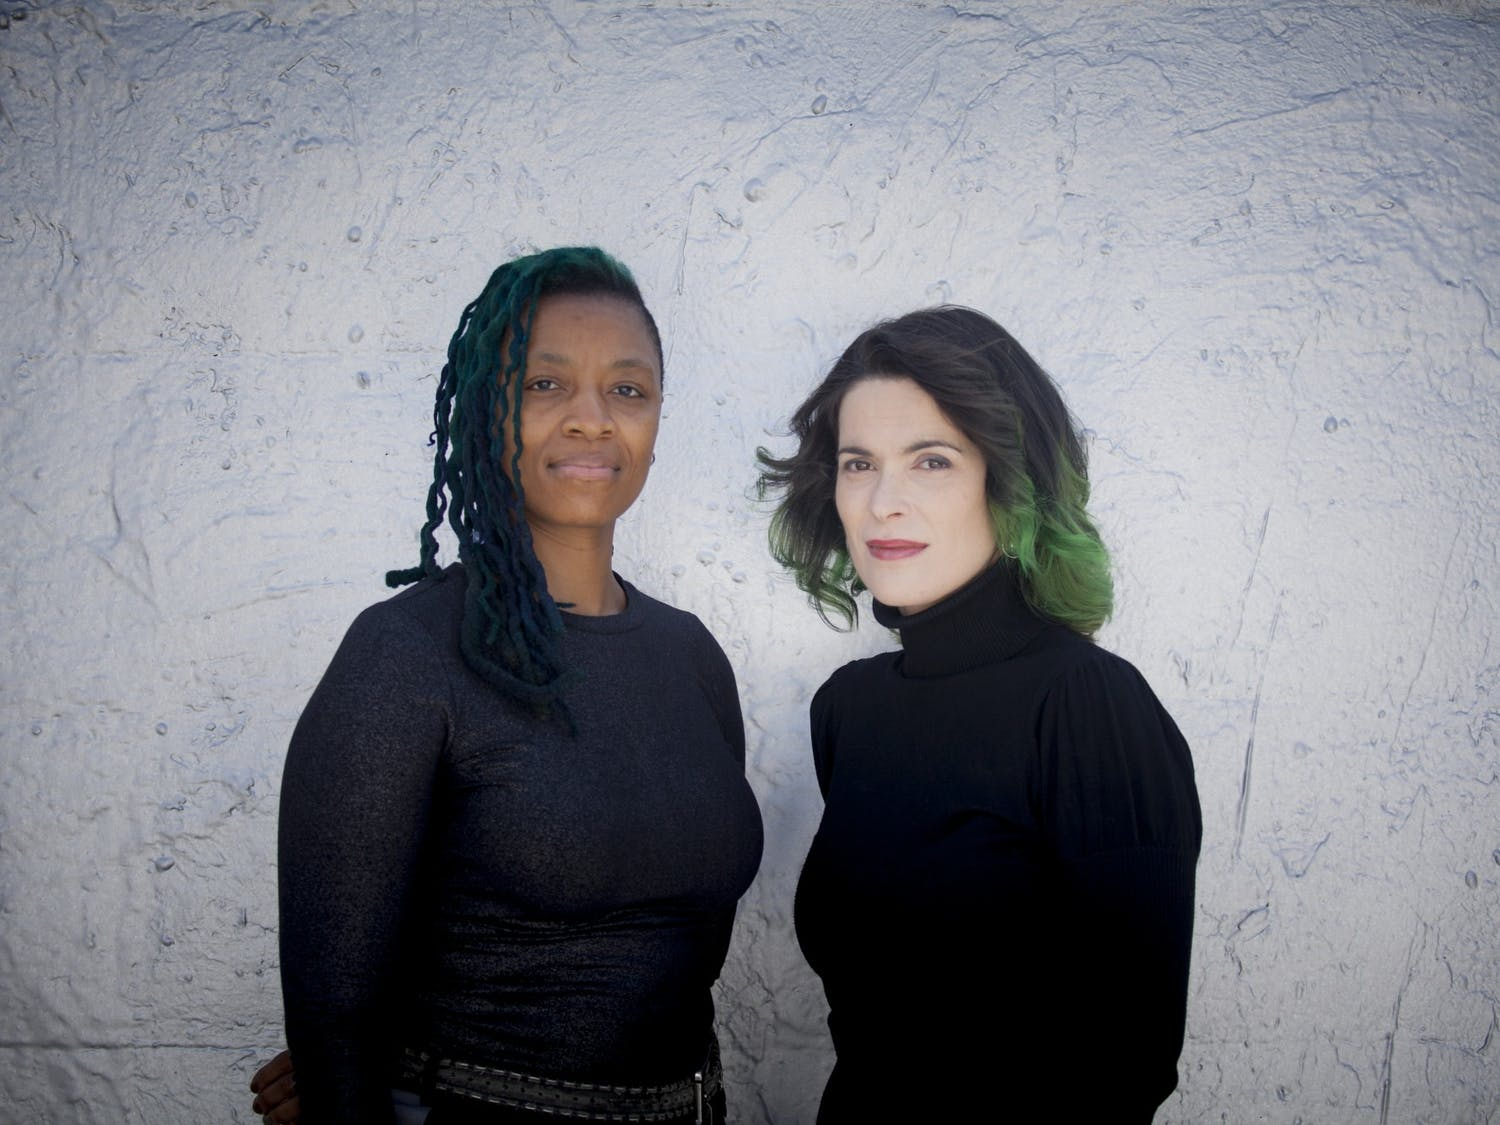 Cristina Pato and Mazz Swift who will be performing Invisible(s) on Friday, Jan.17, 2020. Photo courtesy of Xan Padron.